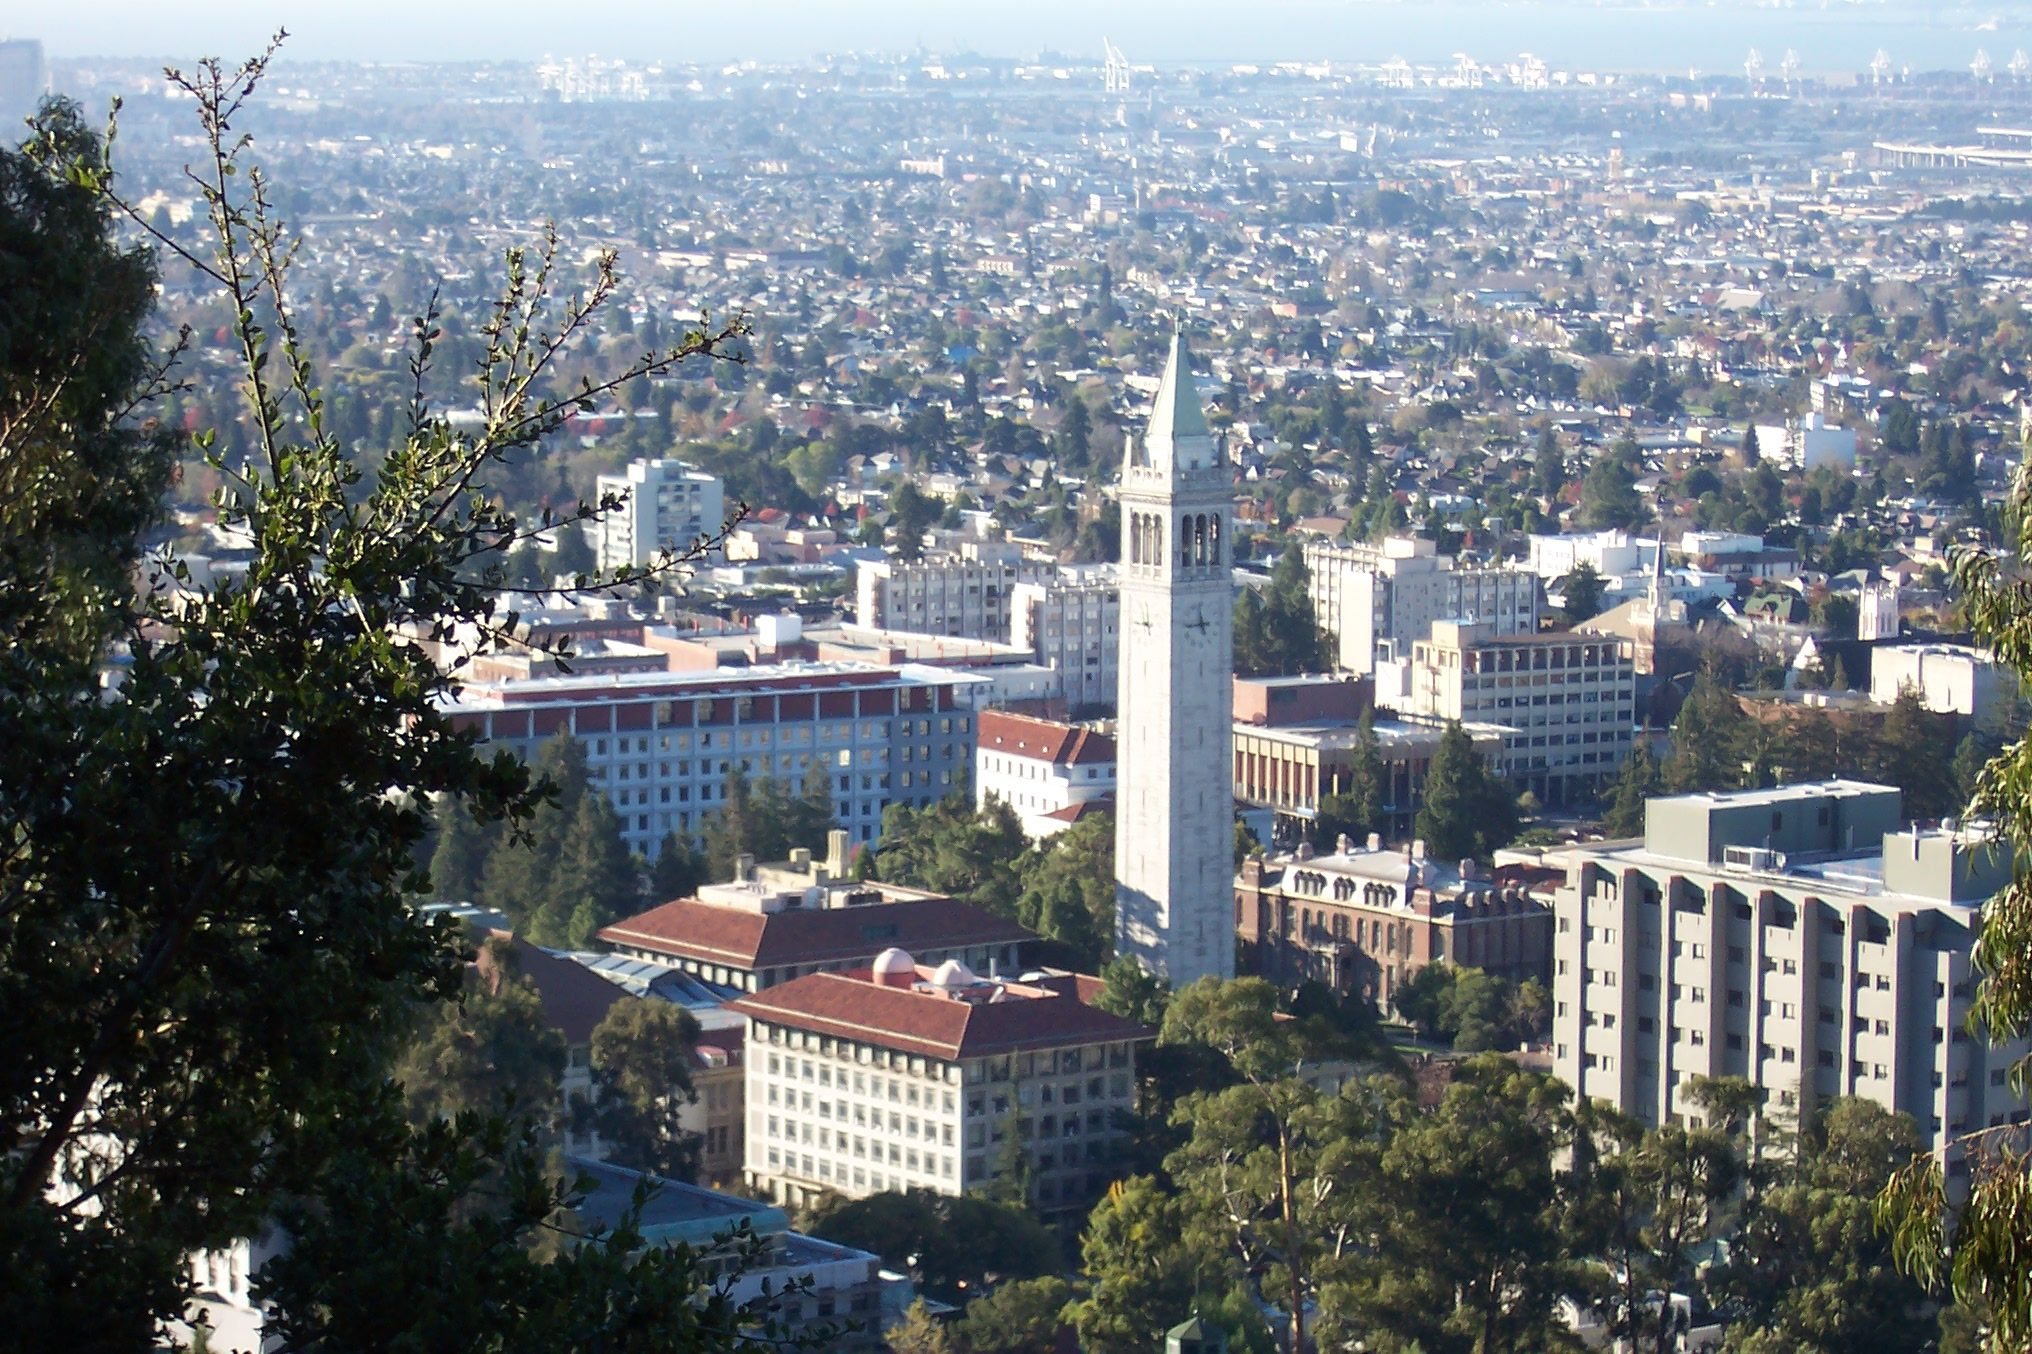 UC Berkeley Best Pizza and Burgers